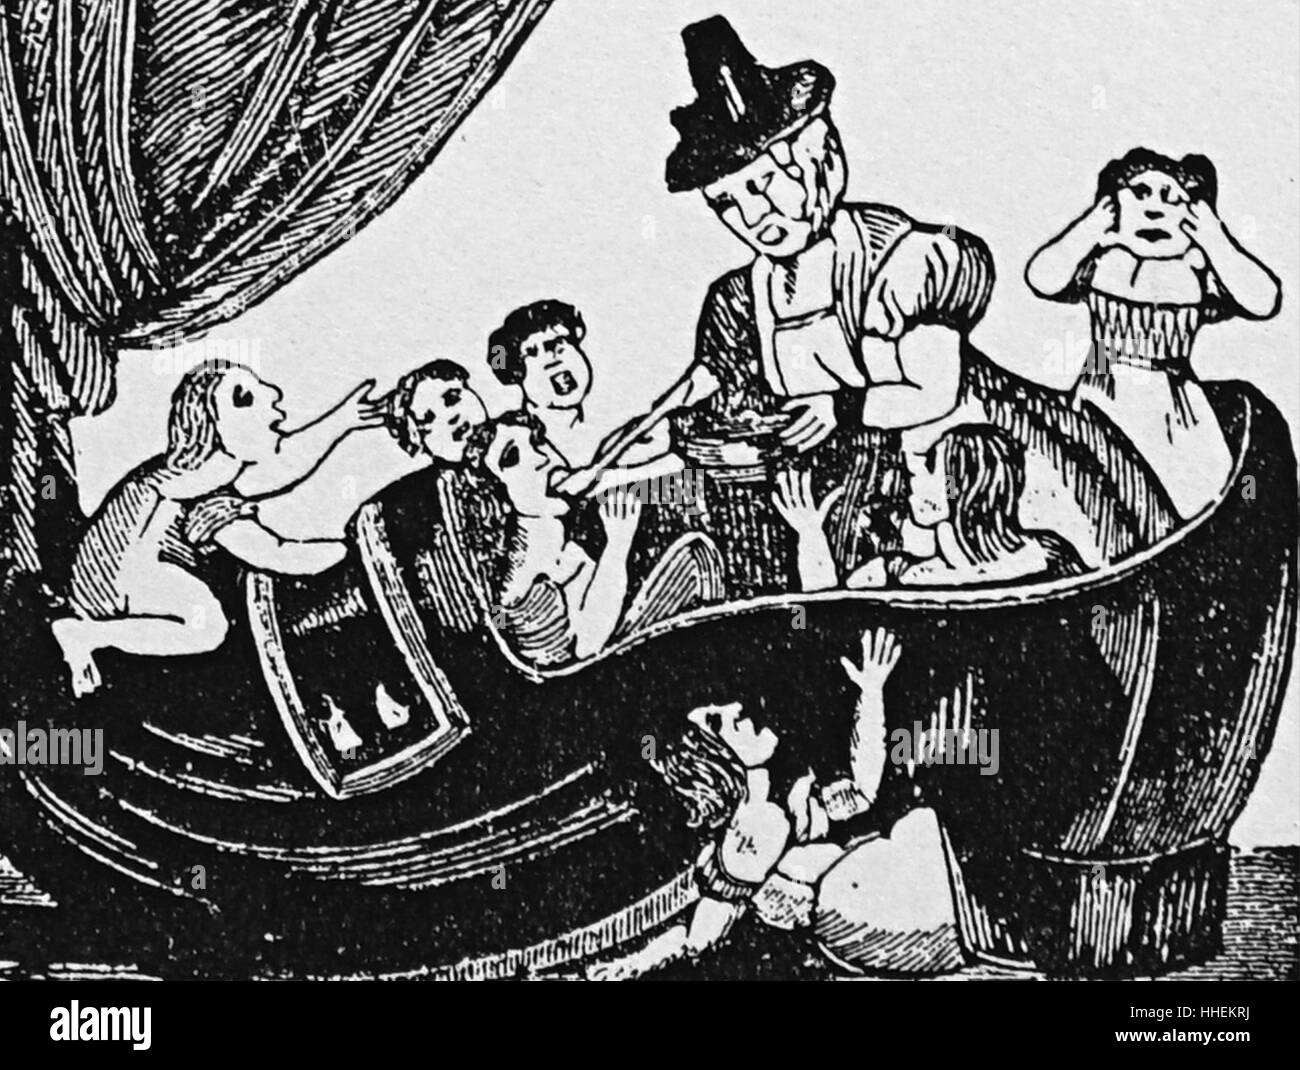 Woodcut illustration depicting an English nursery rhyme (the old woman who lived in a shoe). Dated 19th Century - Stock Image